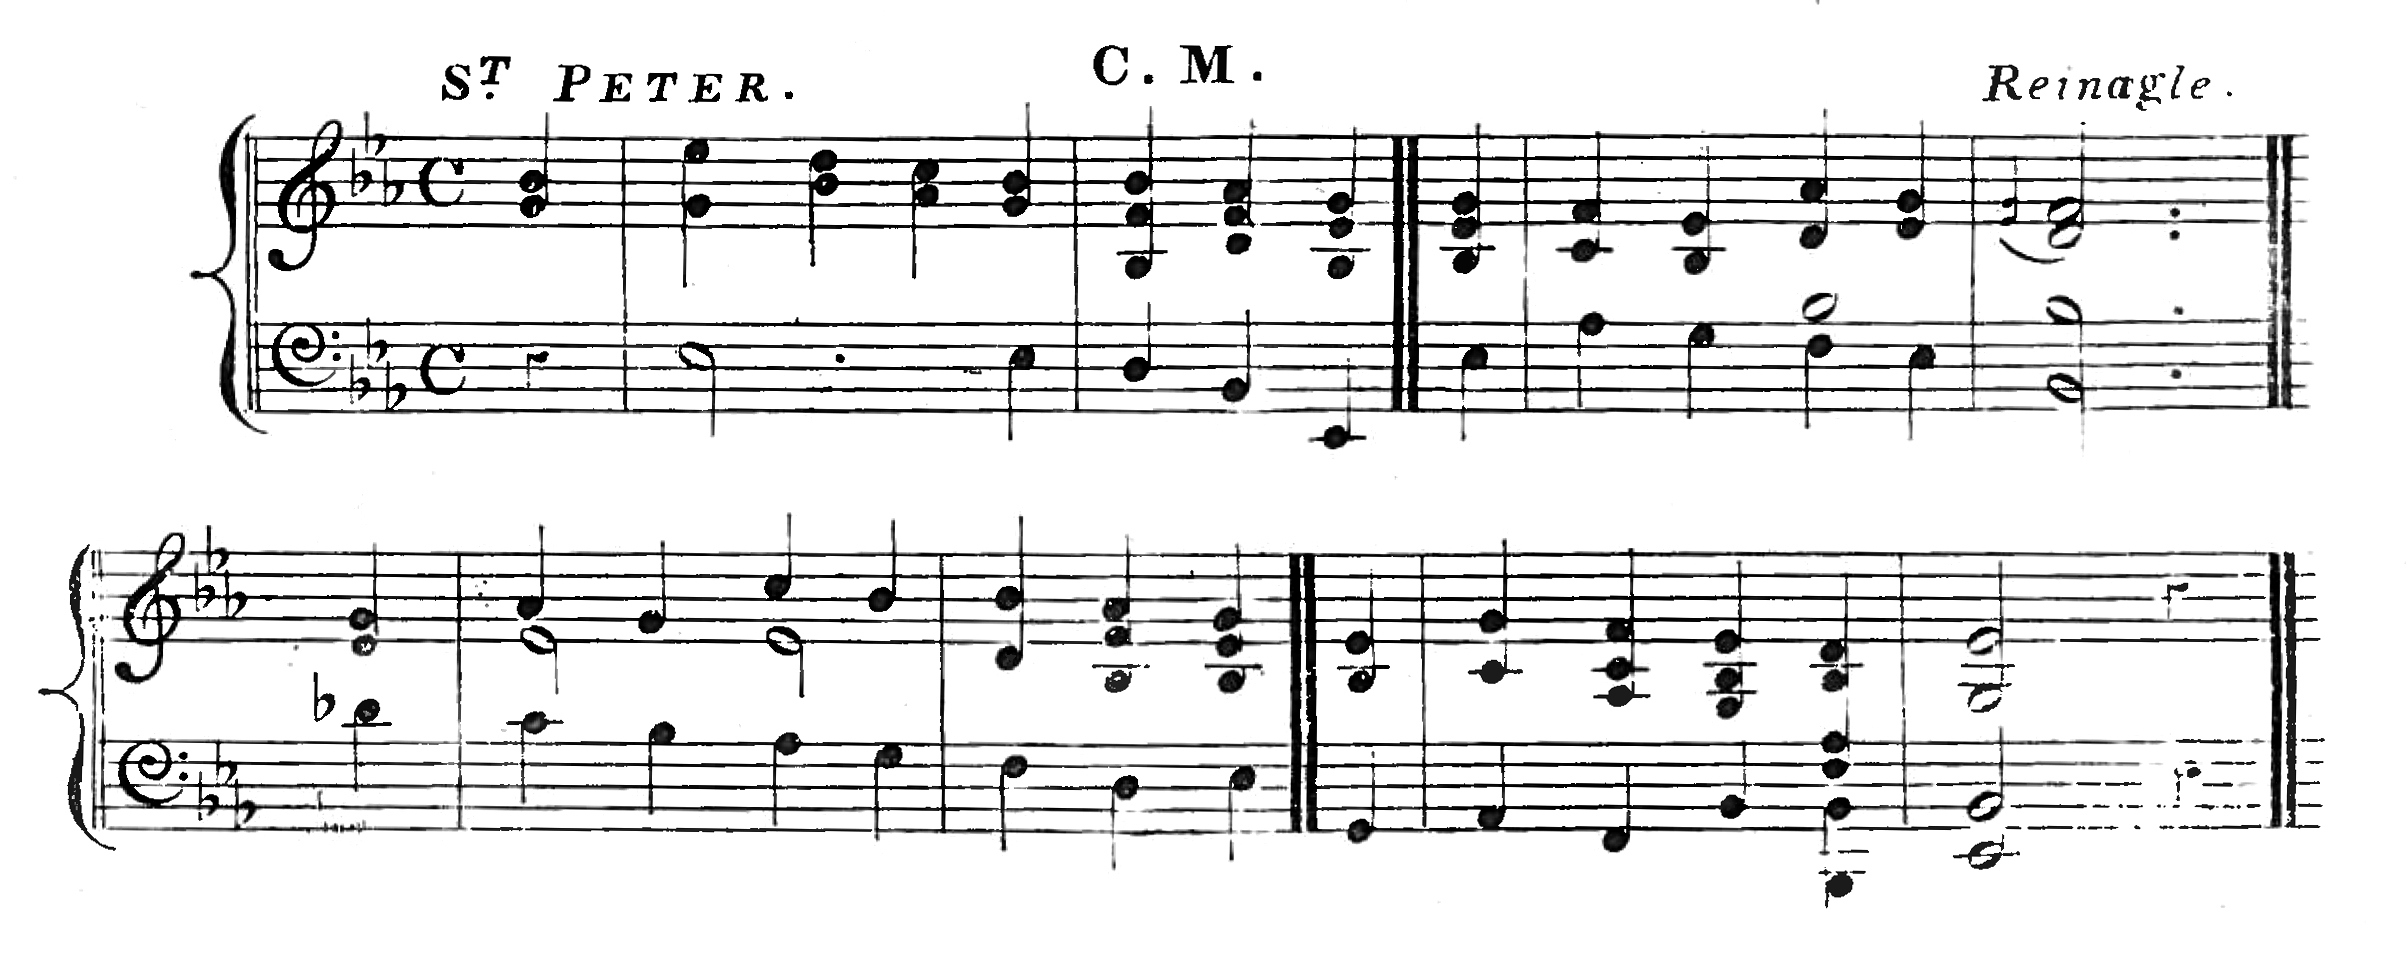 Fig. 3.  A.R. Reinagle,  Collection of Psalm and Hymn Tunes, Chants, and Other Music  (London: T. Holloway, ca. 1840).